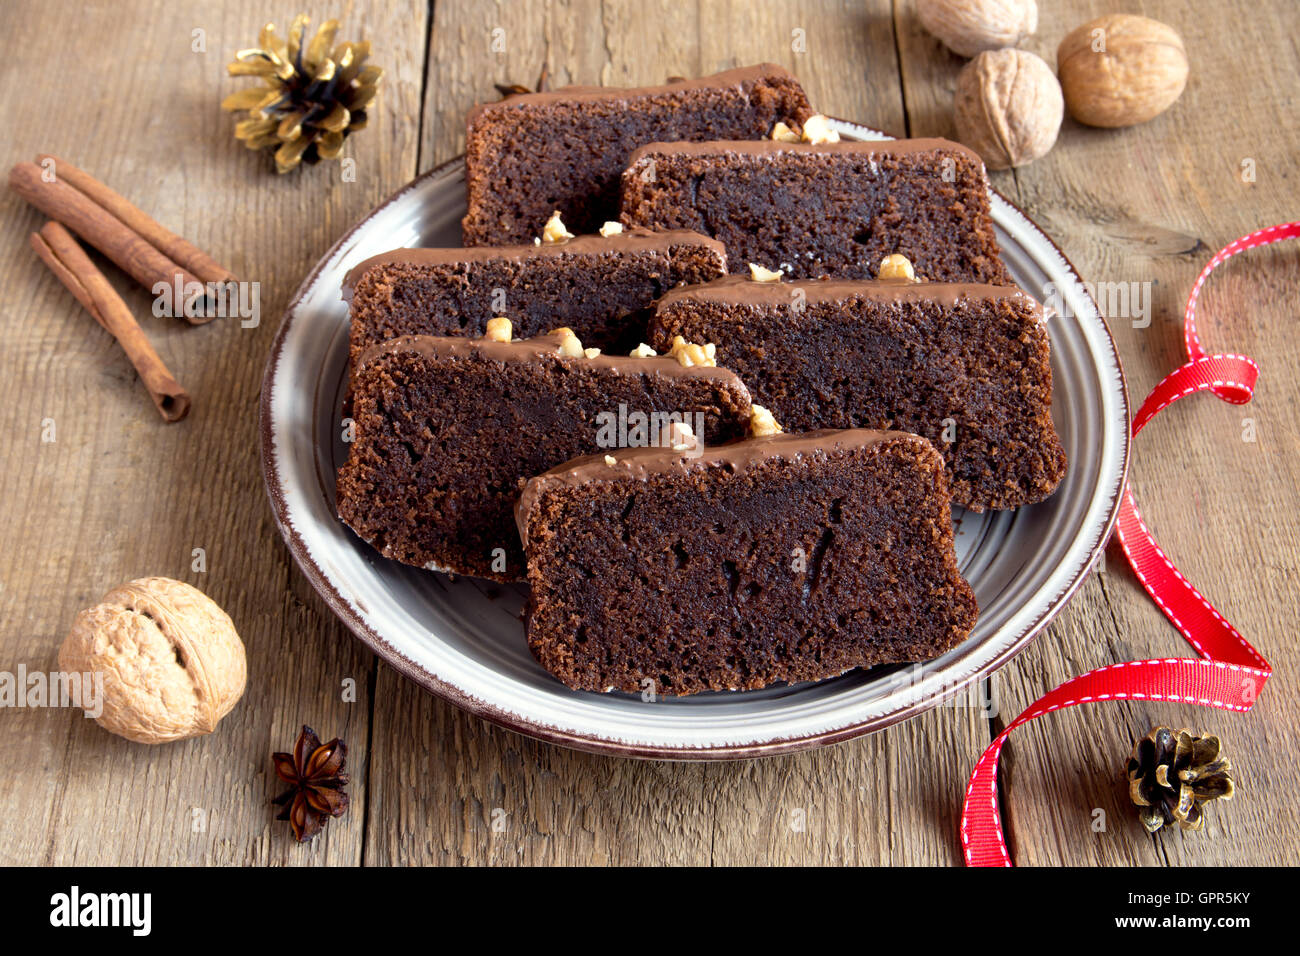 Chocolate sliced cake with nuts and spices for Christmas over rustic wooden background - Stock Image